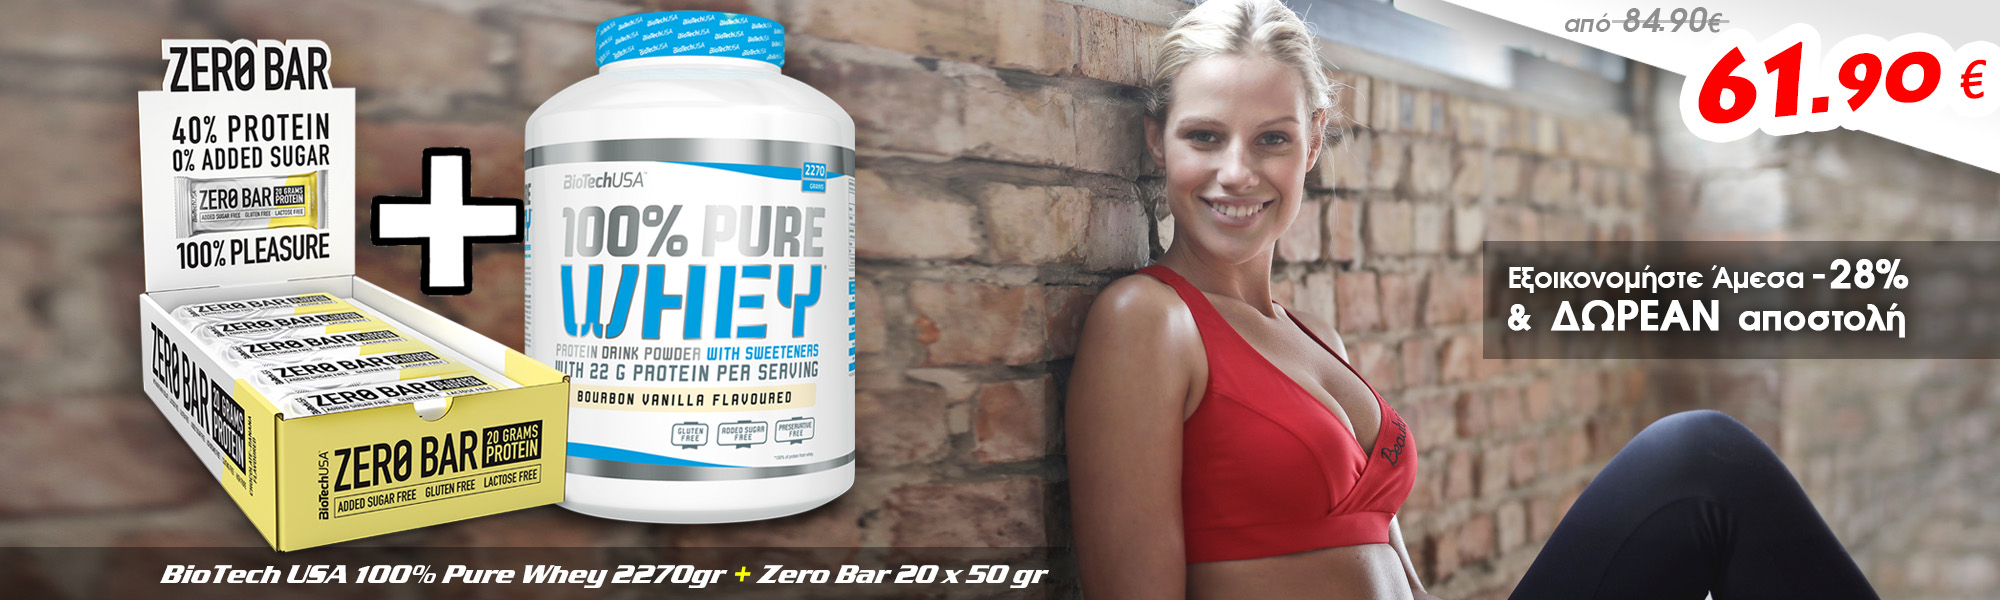 BioTech USA 100% Pure Whey 2270gr + Zero Bar 20 x 50 gr